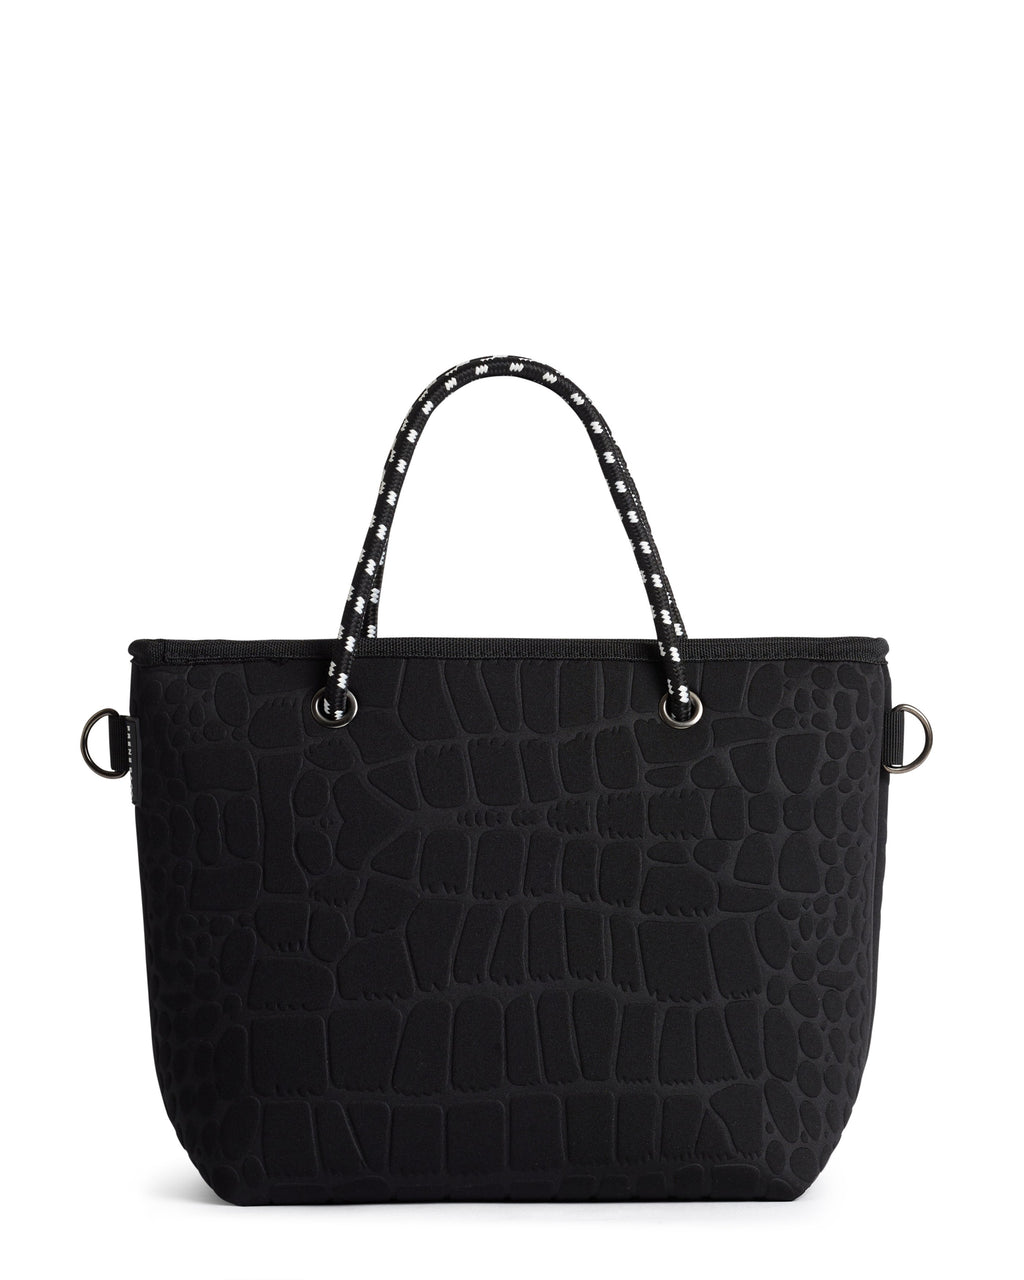 PRENE  //  Limited Edition The Pebbles Bag BLACK CROC